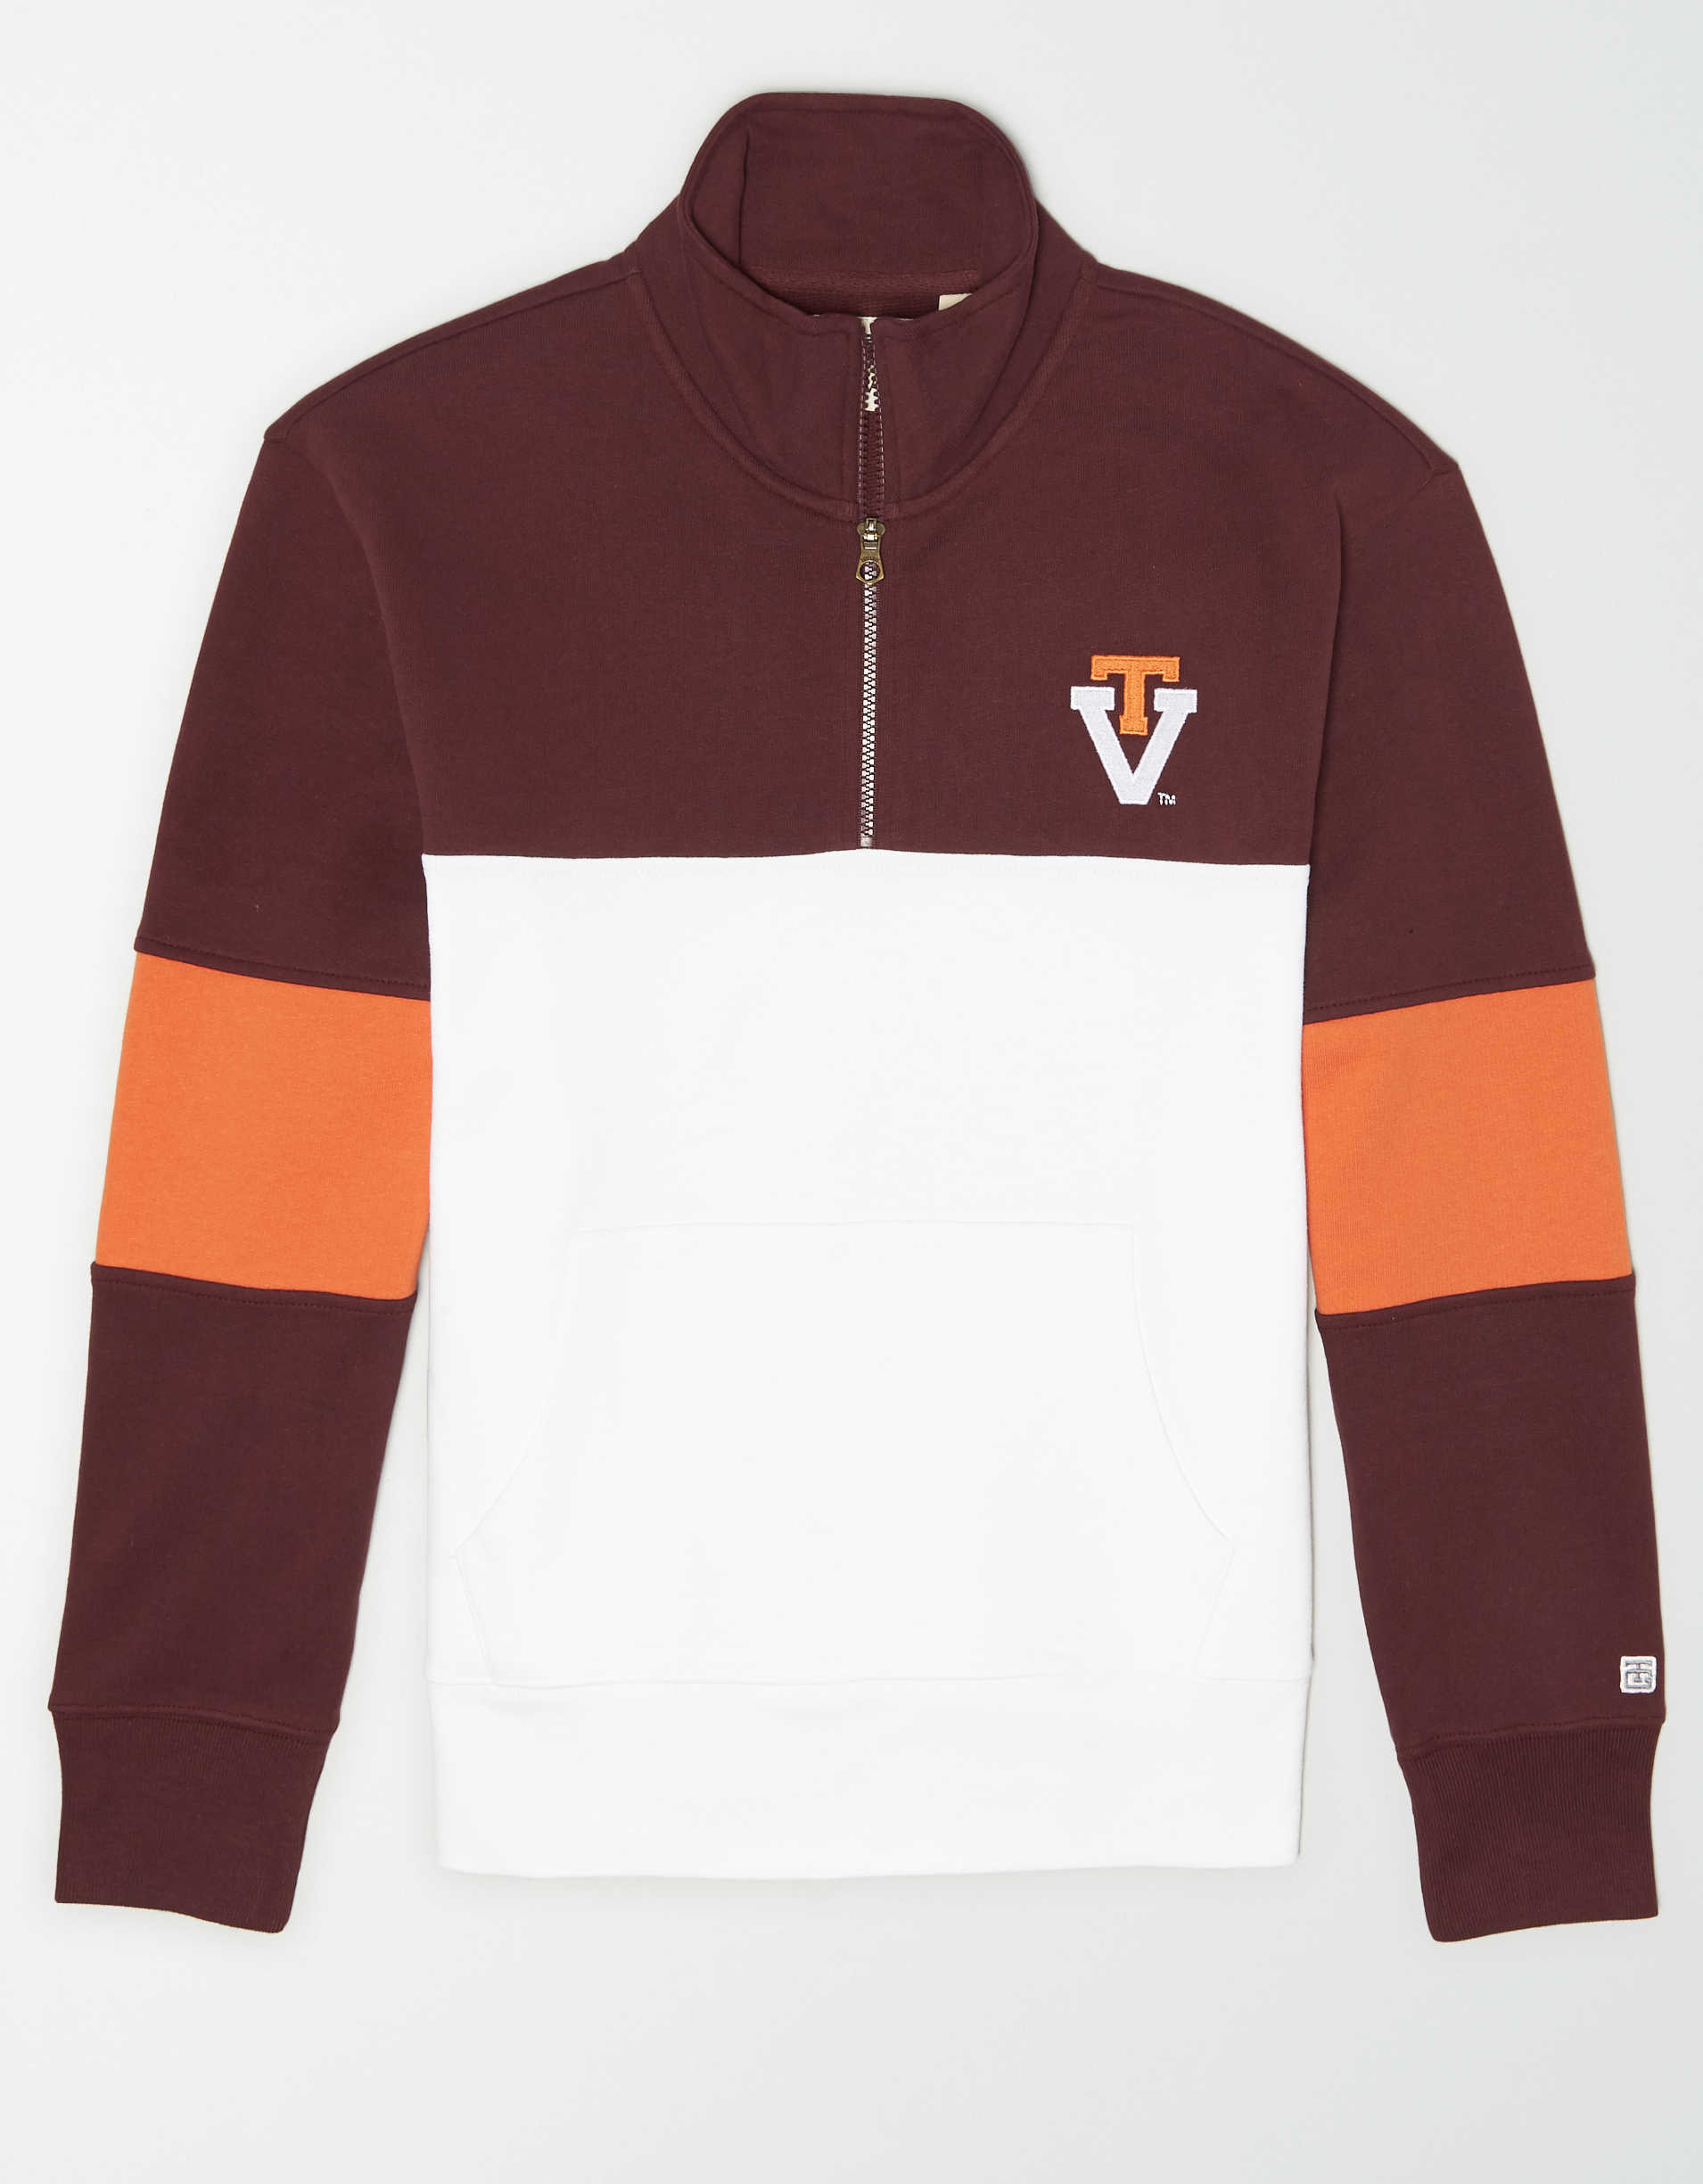 Tailgate Men's Virginia Tech Hokies Quarter-Zip Sweatshirt